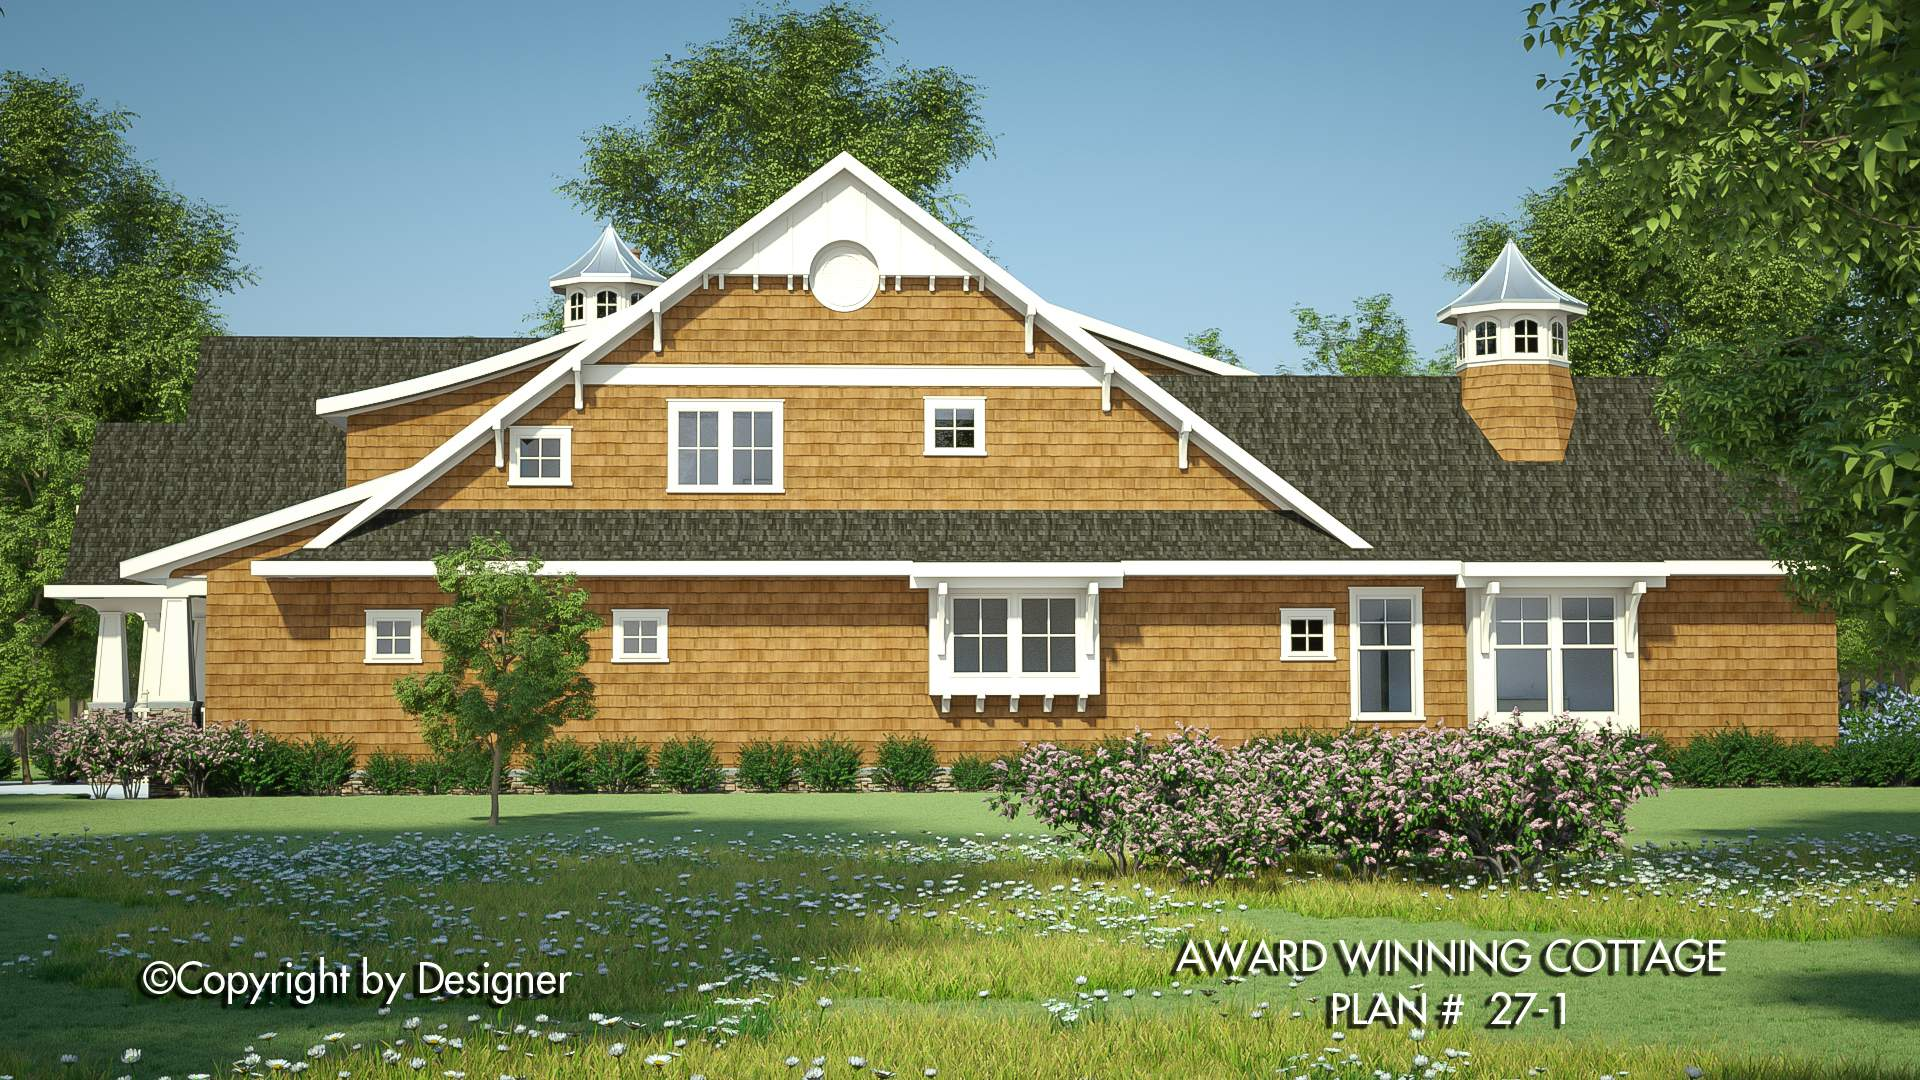 Award Winning Cottage House Plans Garrell Associates